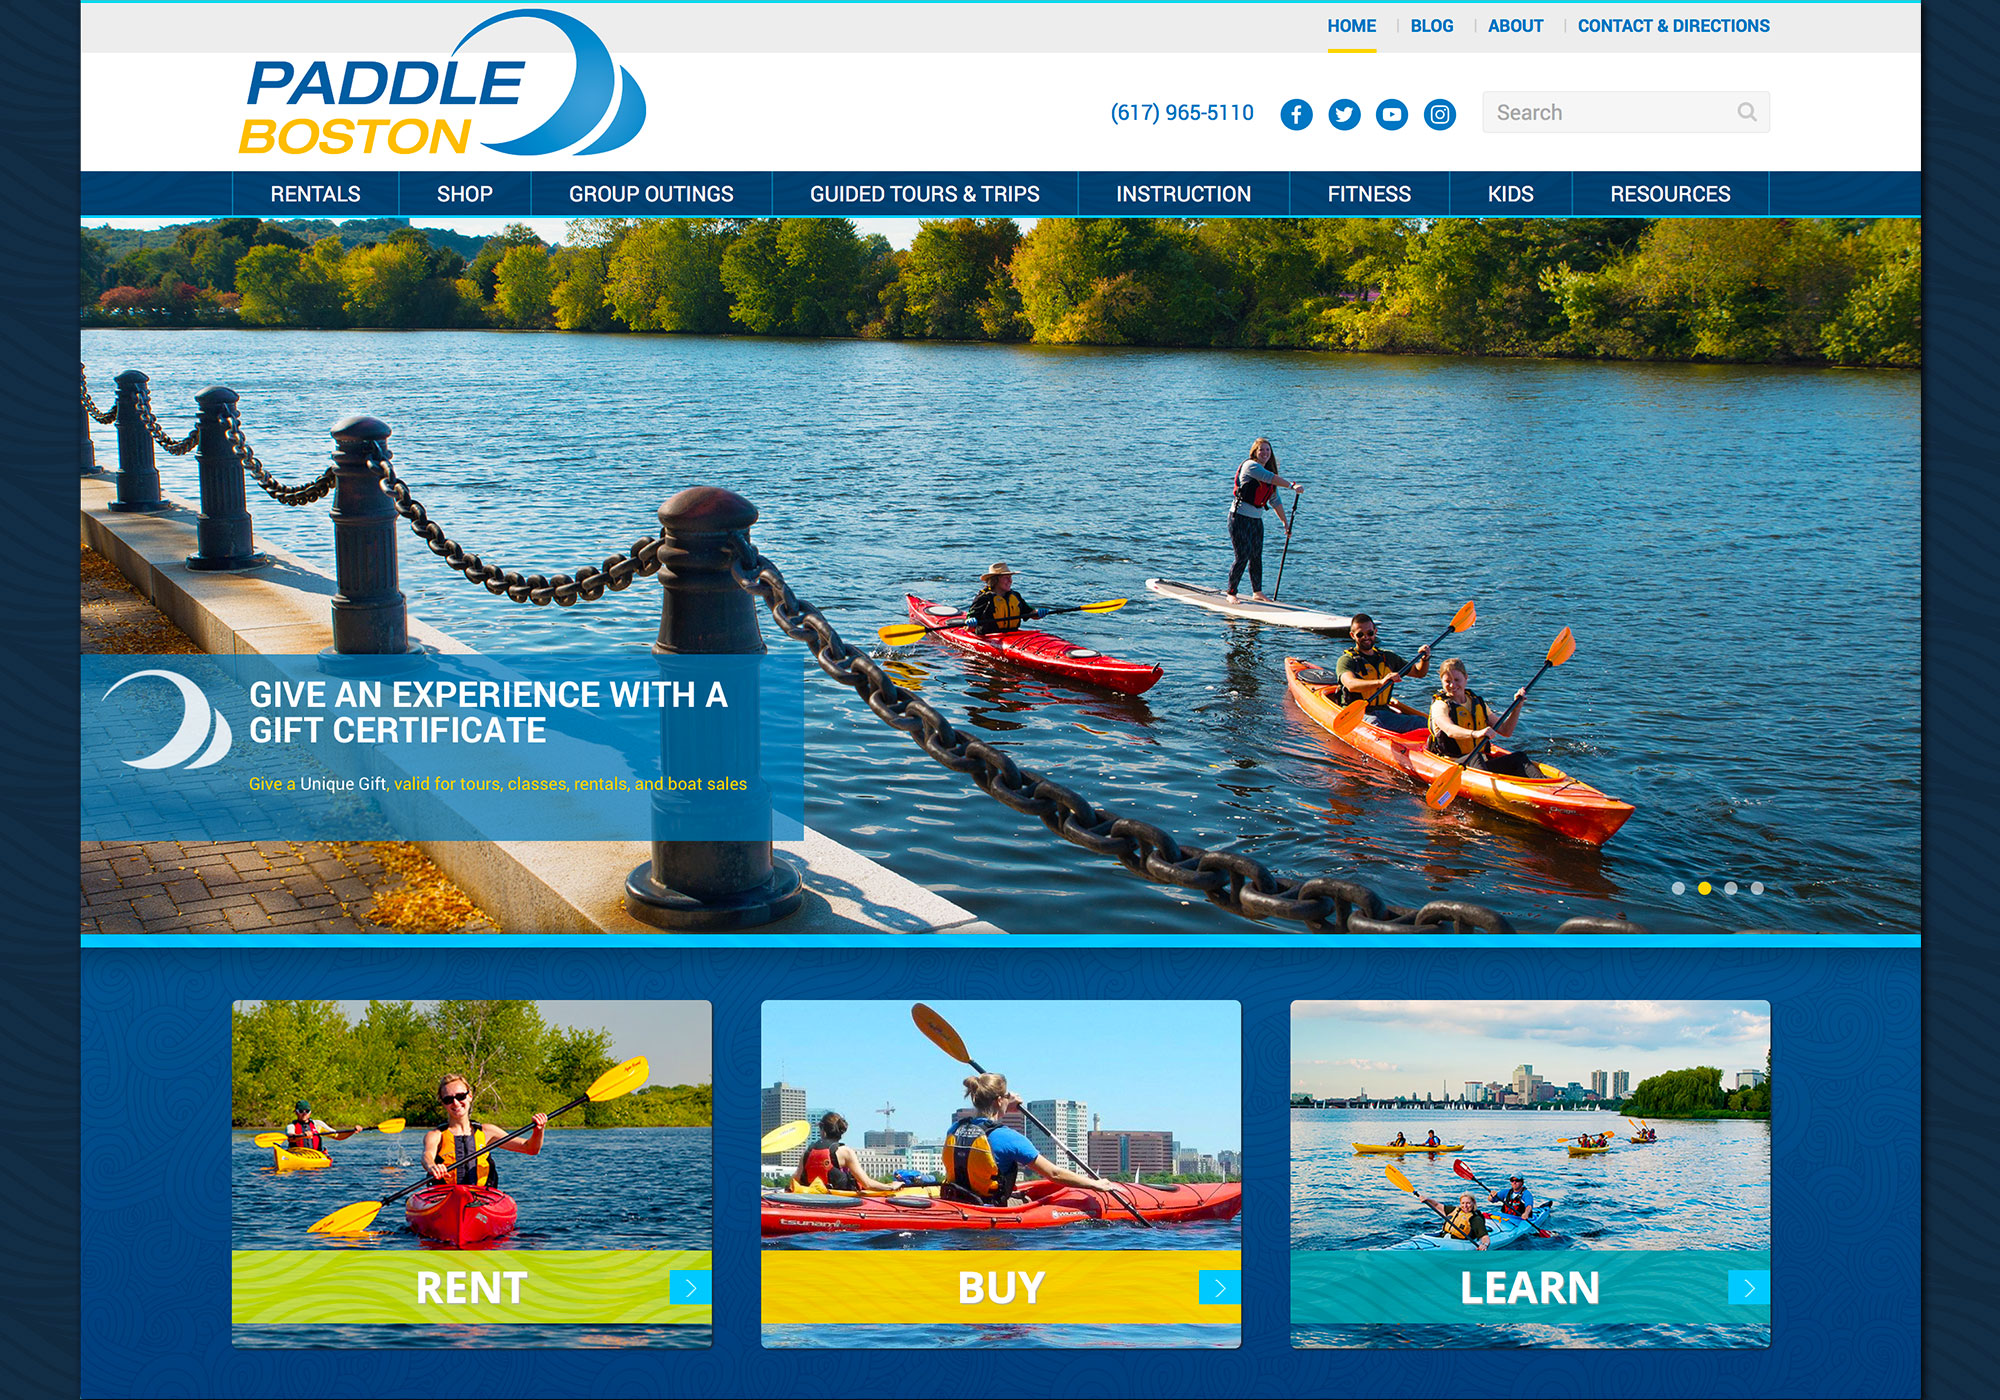 Another look at the homepage for Paddle Boston's new website. Designed by SlickFish Studios.